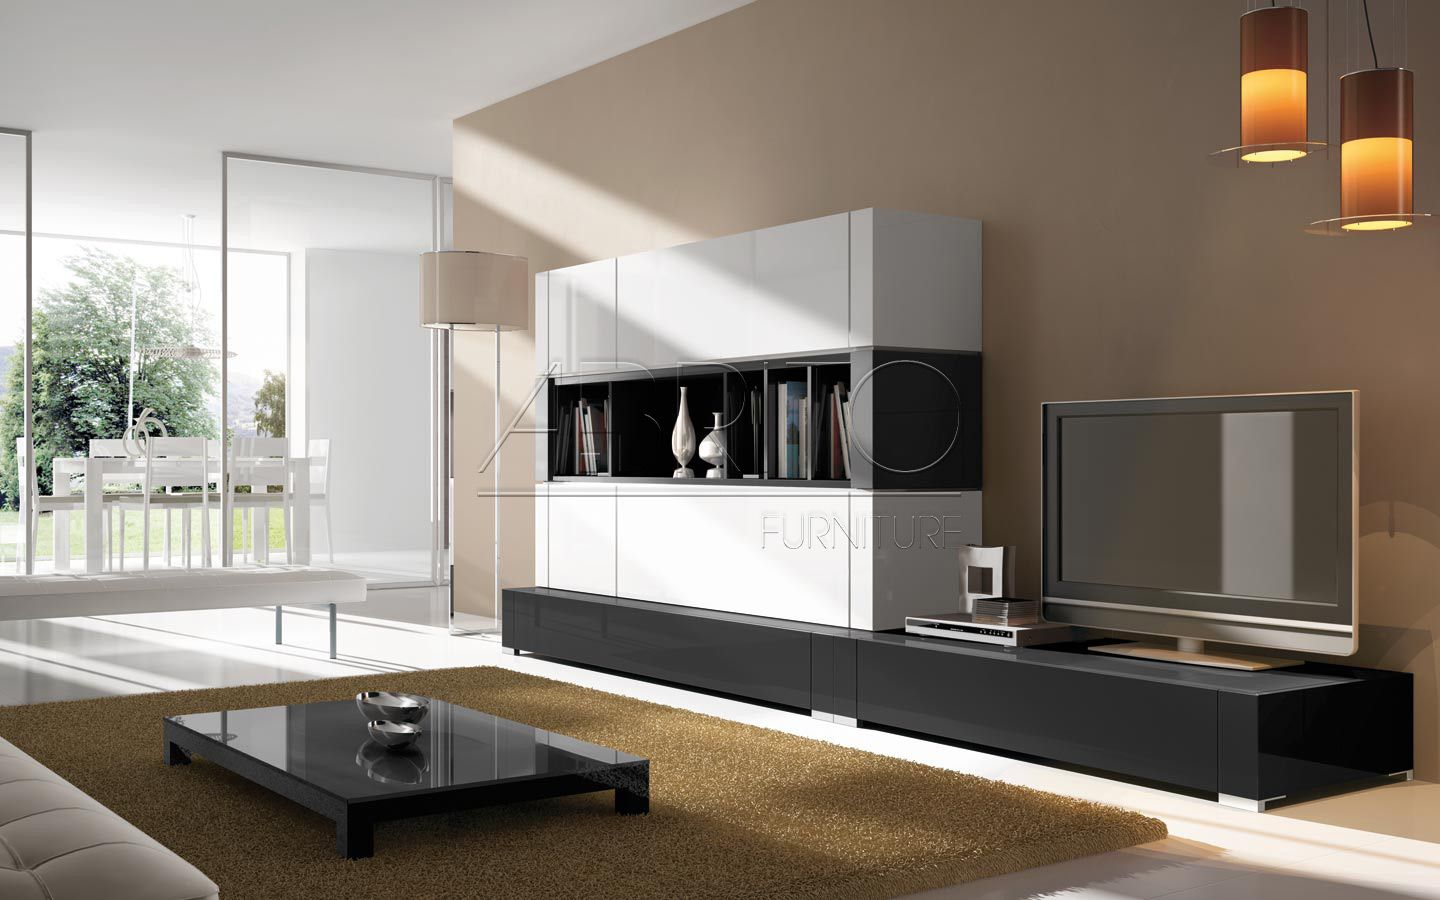 Homedesignideas Eu: If You Didn't Get The Chance To